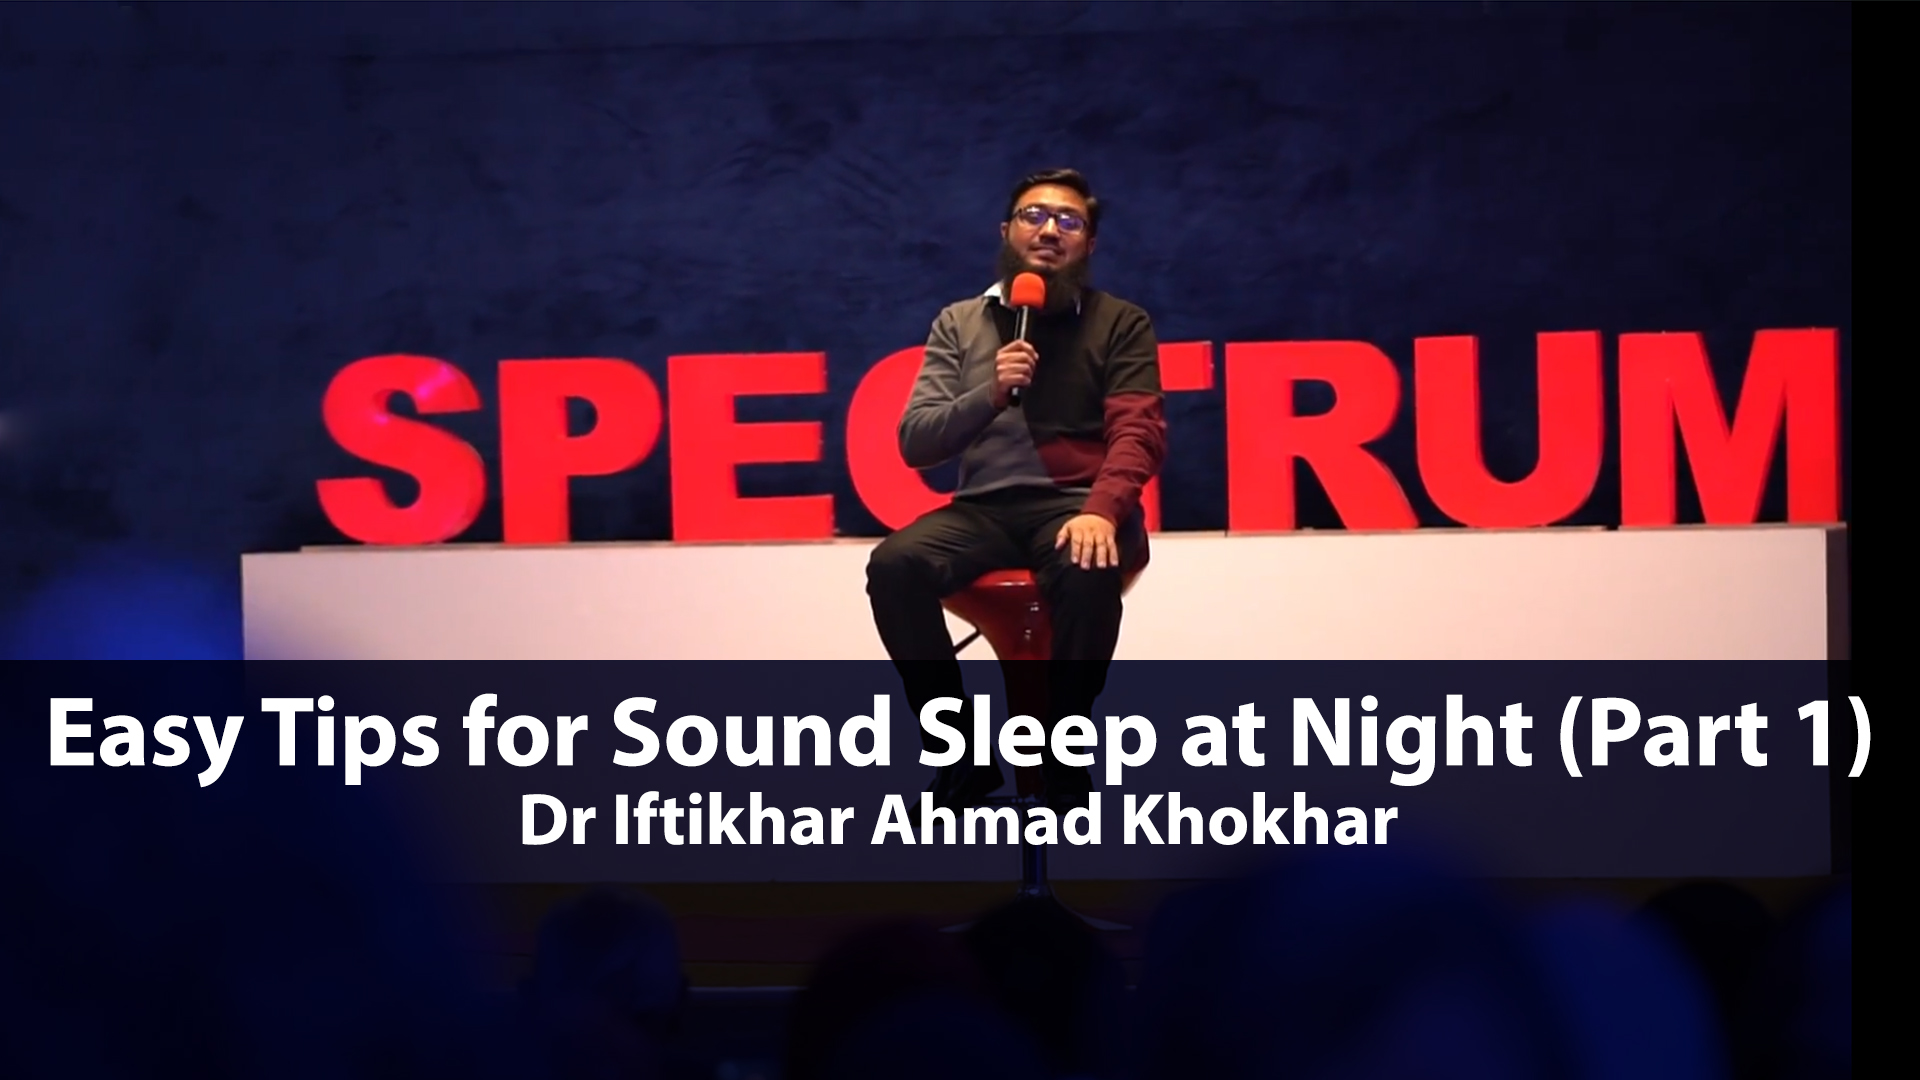 Easy Tips for Sound Sleep at Night (part 1)